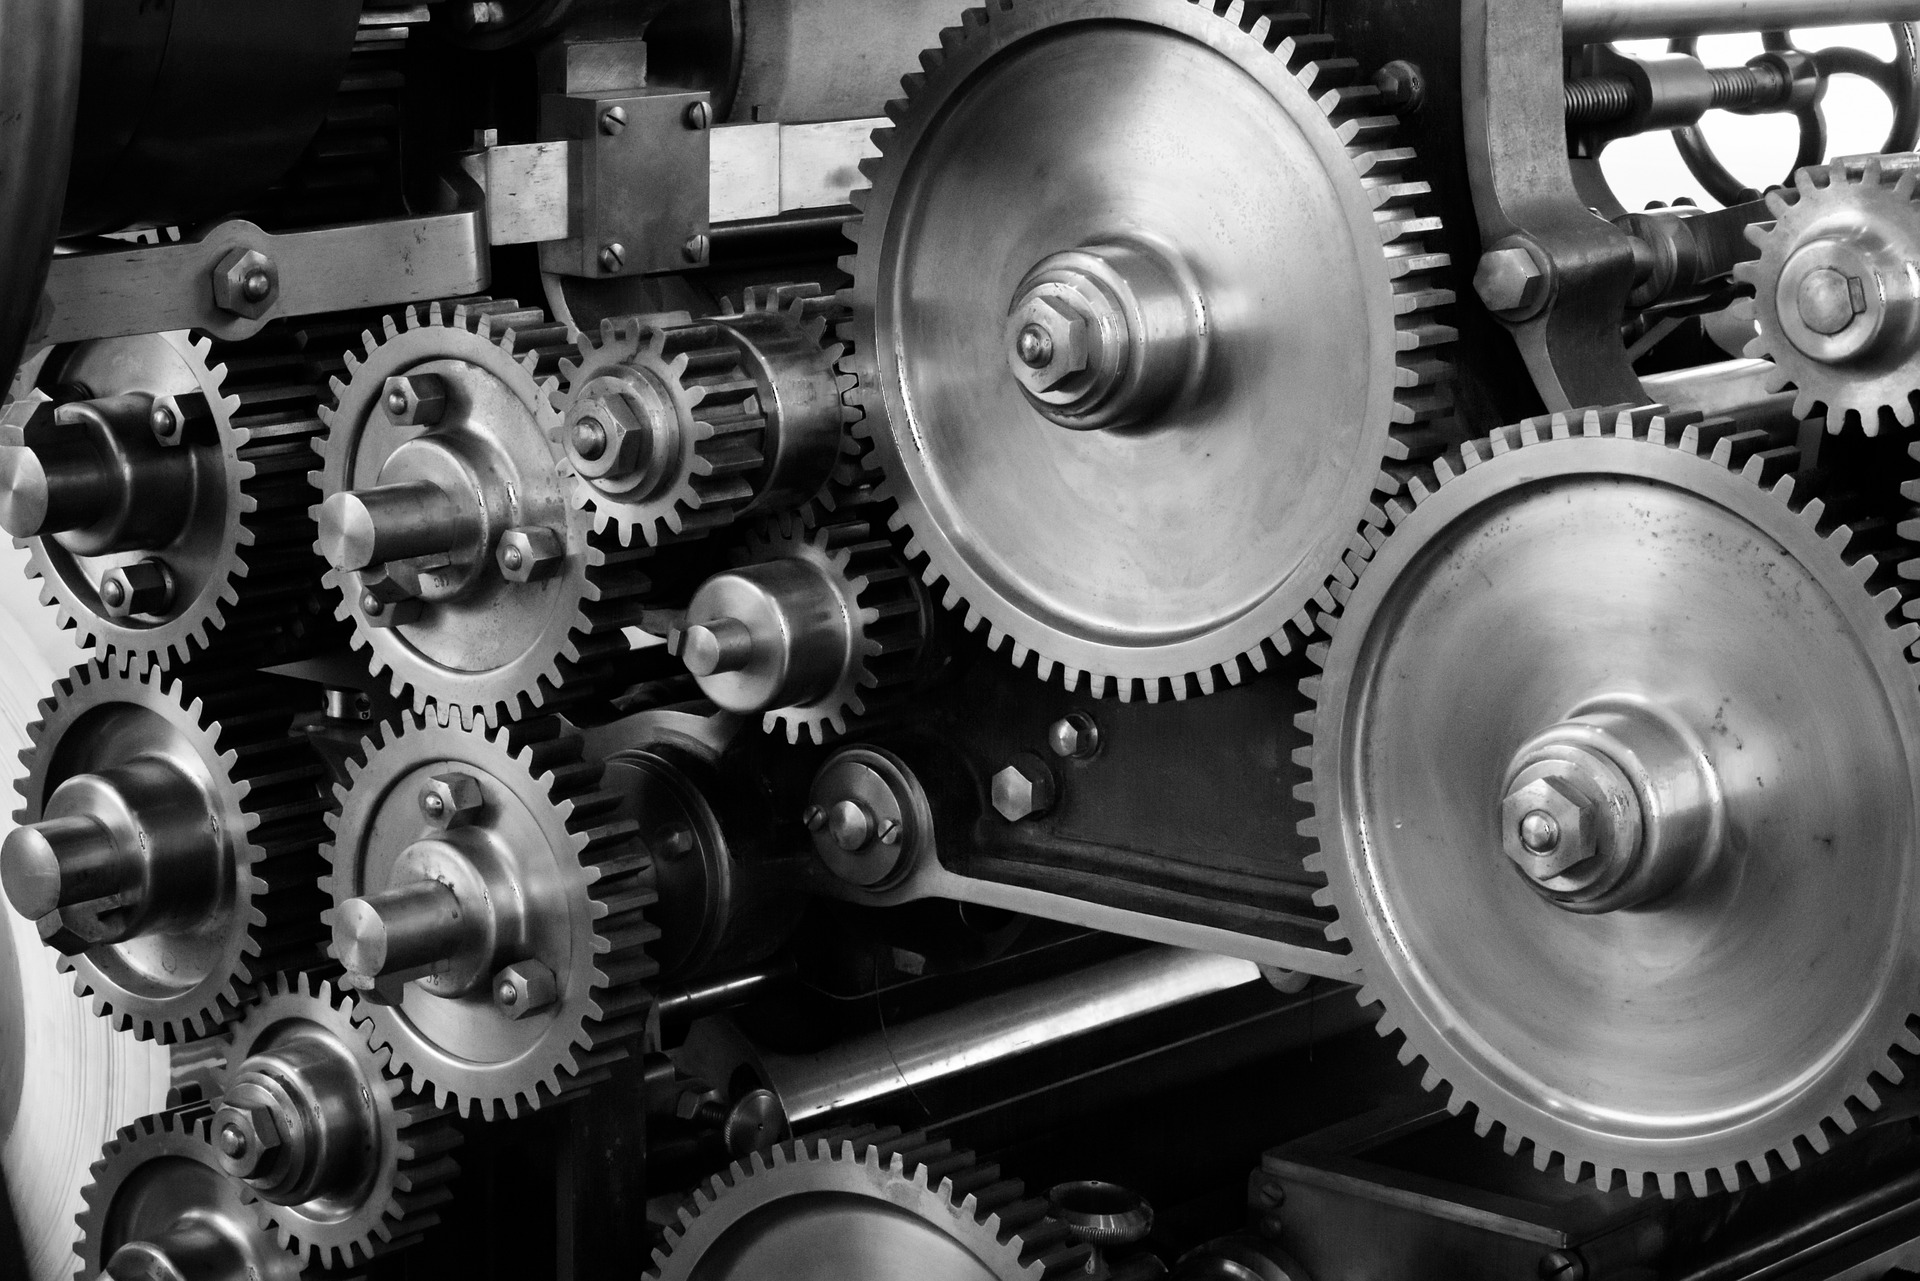 Several cogs in a machine working together in a set pattern.